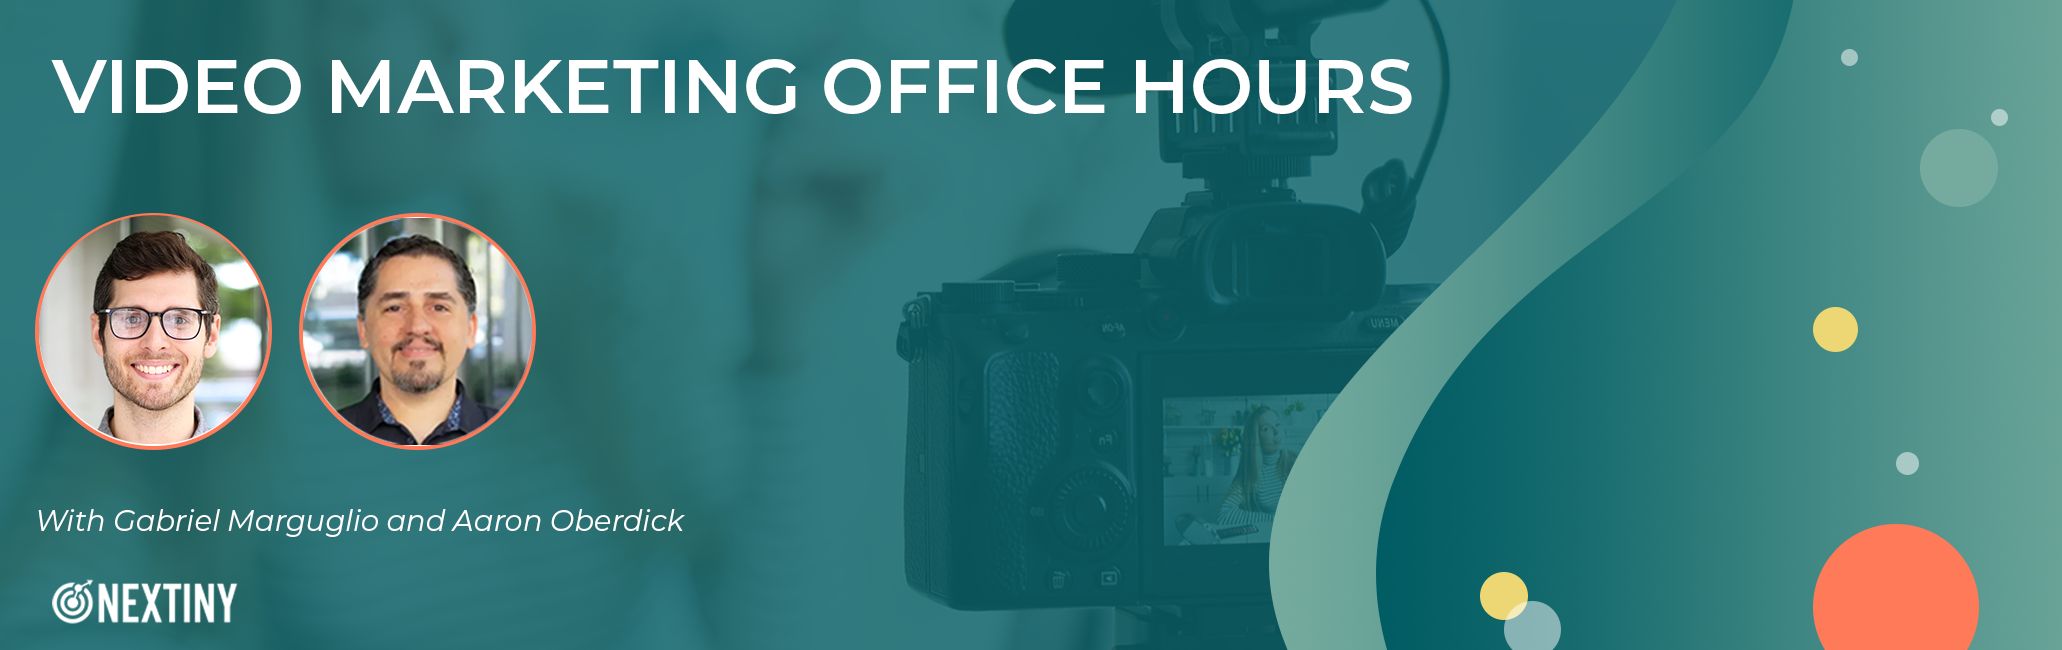 video marketing office hours